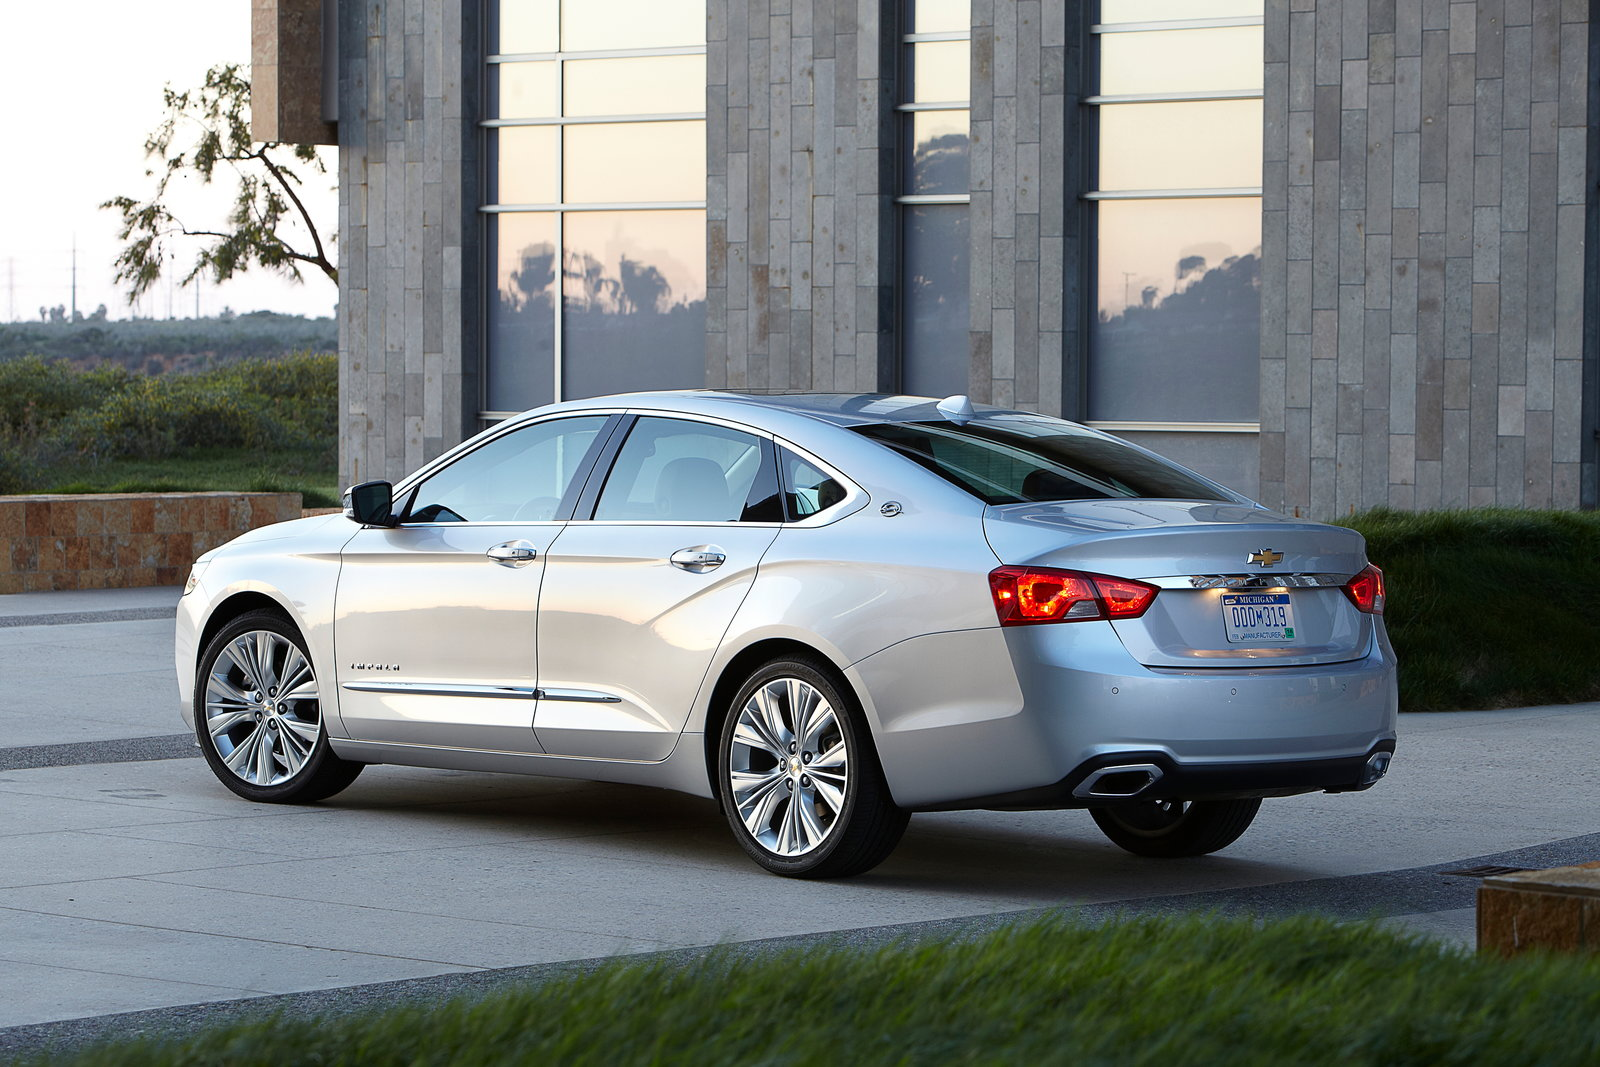 2017 chevrolet impala styles features highlights. Black Bedroom Furniture Sets. Home Design Ideas